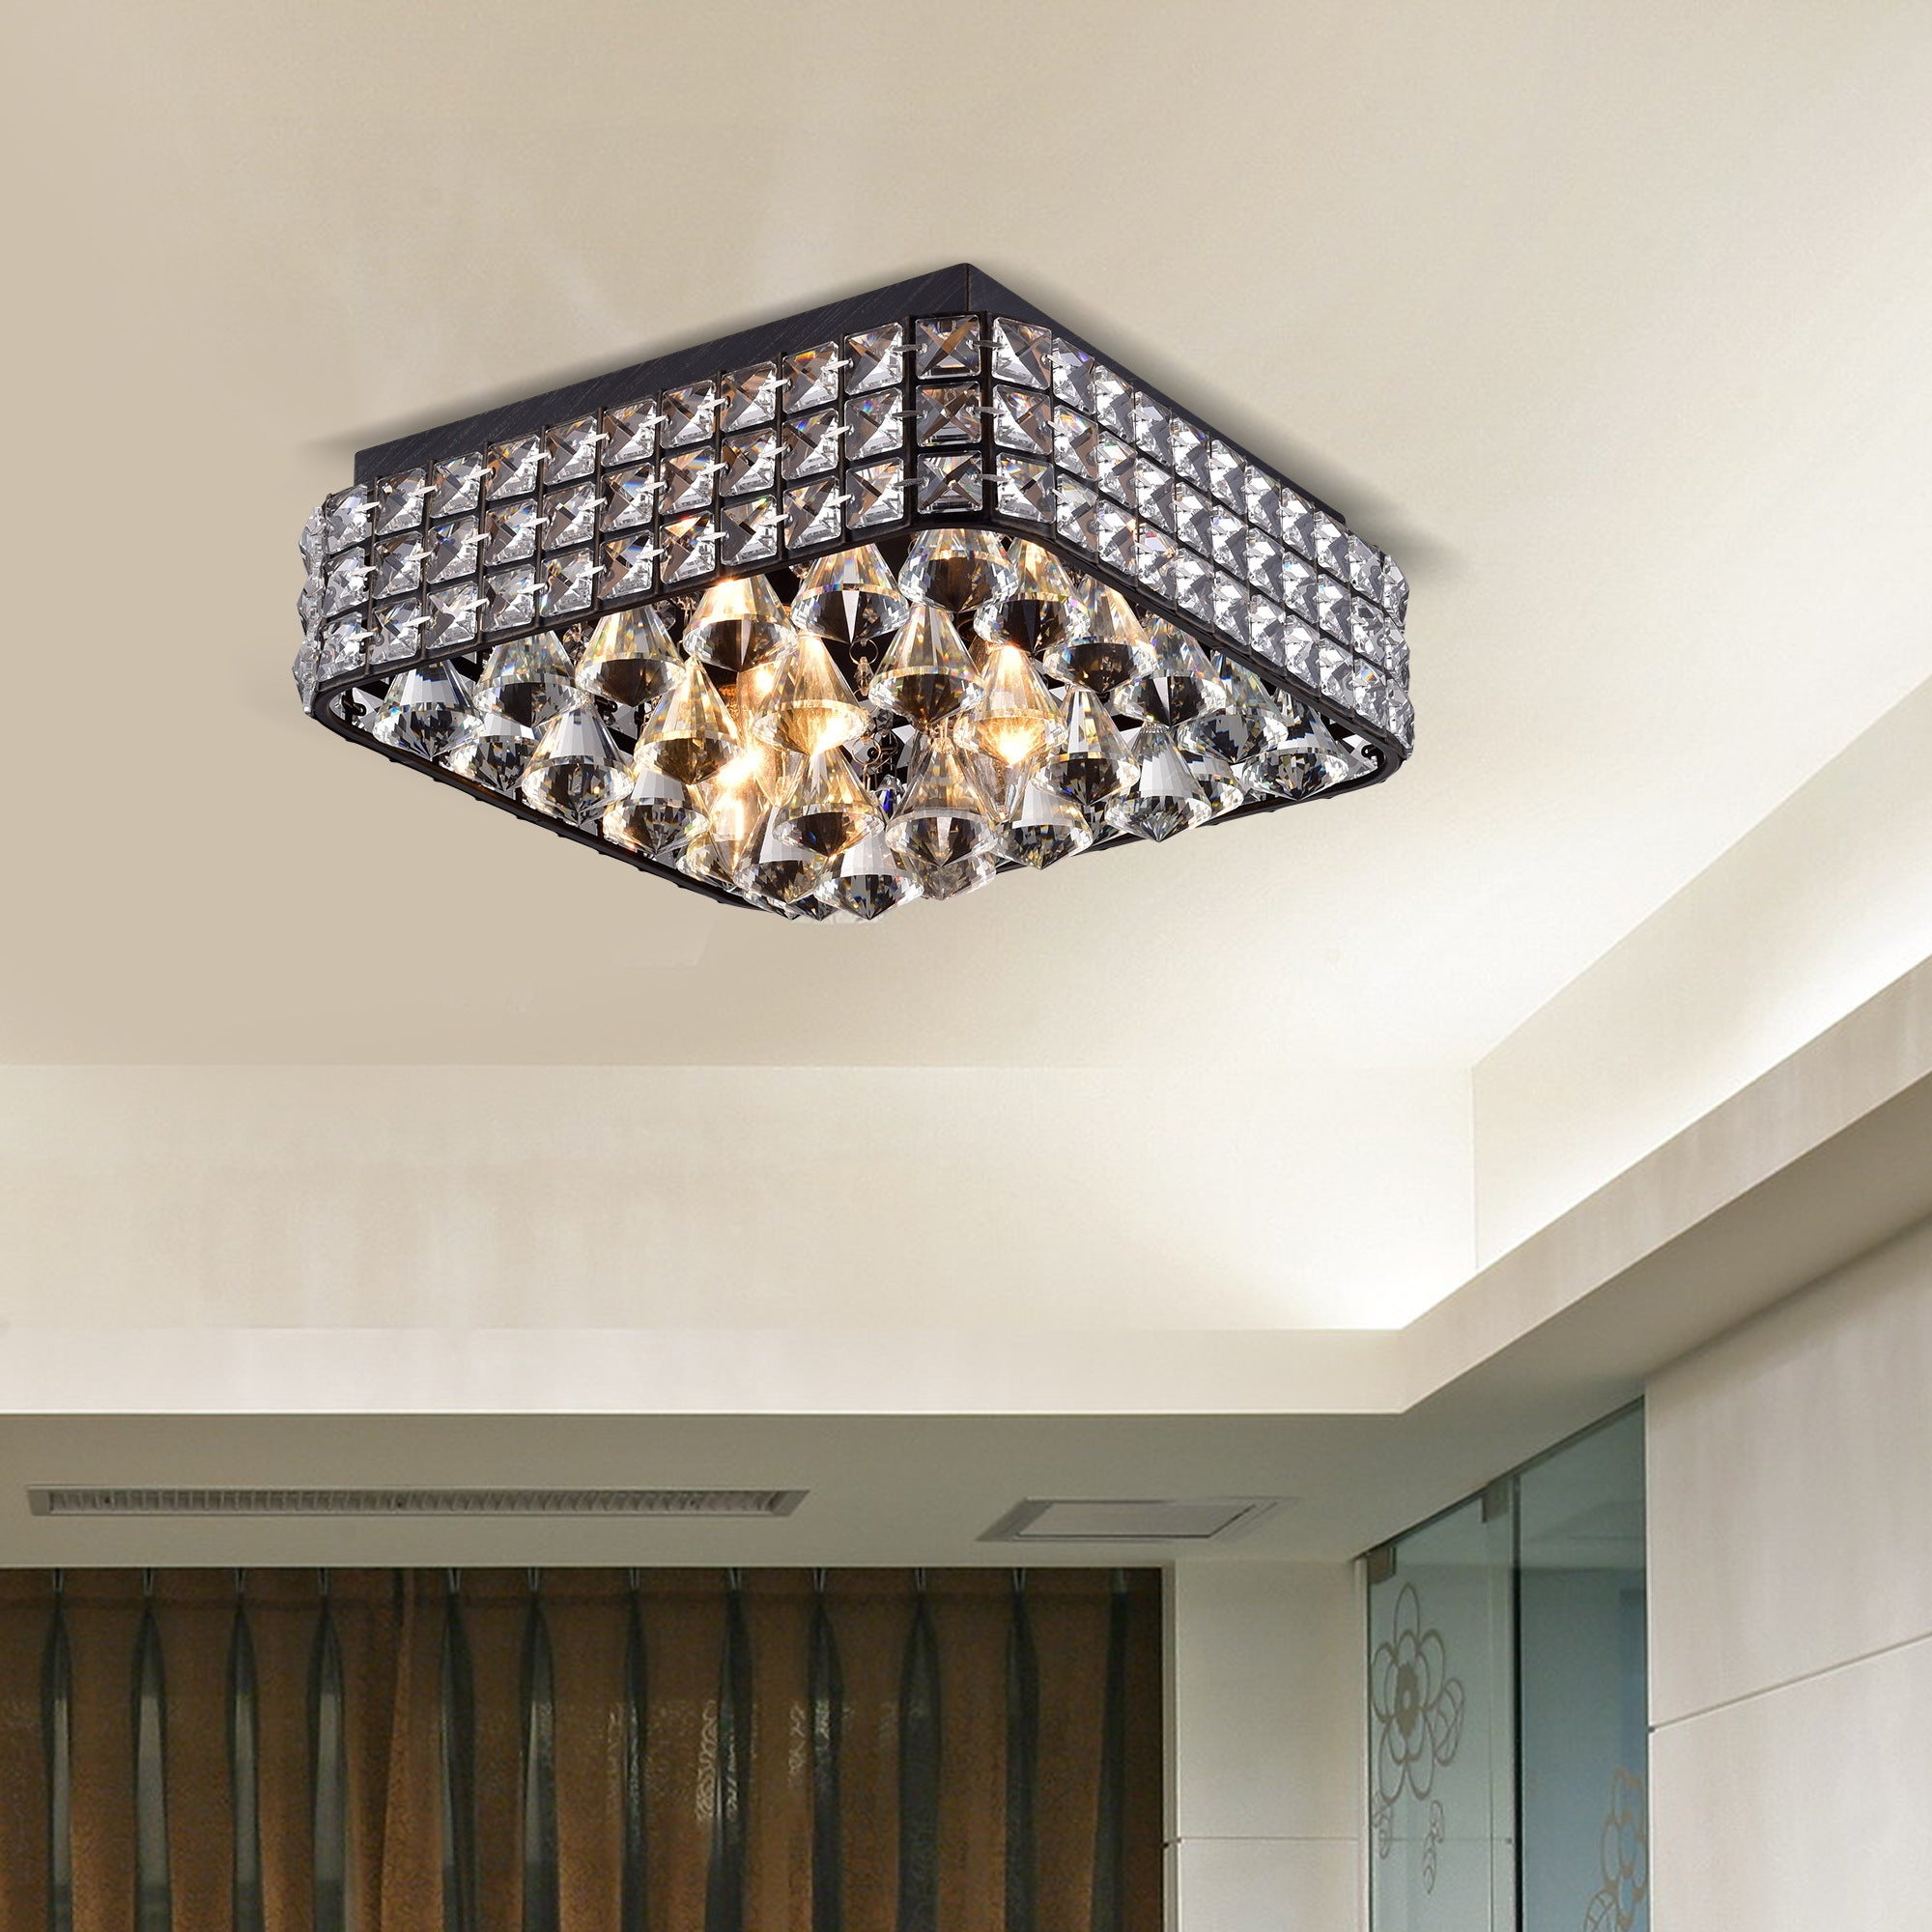 Gisela antique black ironmetalcrystal contemporary square flush gisela antique black ironmetalcrystal contemporary square flush mount chandelier free shipping today overstock 18999958 arubaitofo Image collections